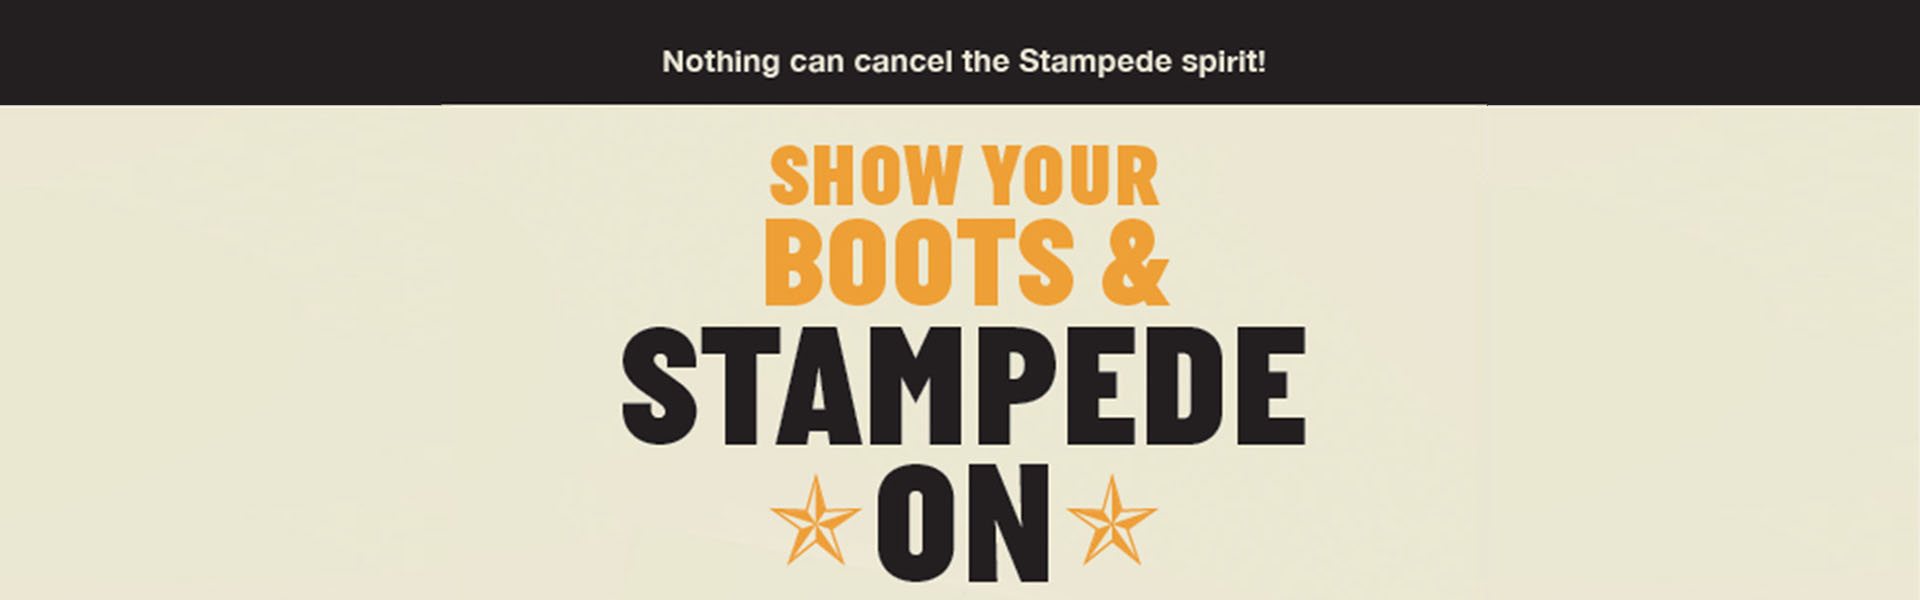 Show your boots and stampede on – Stampede spirit at Goodwill can't be cancelled!